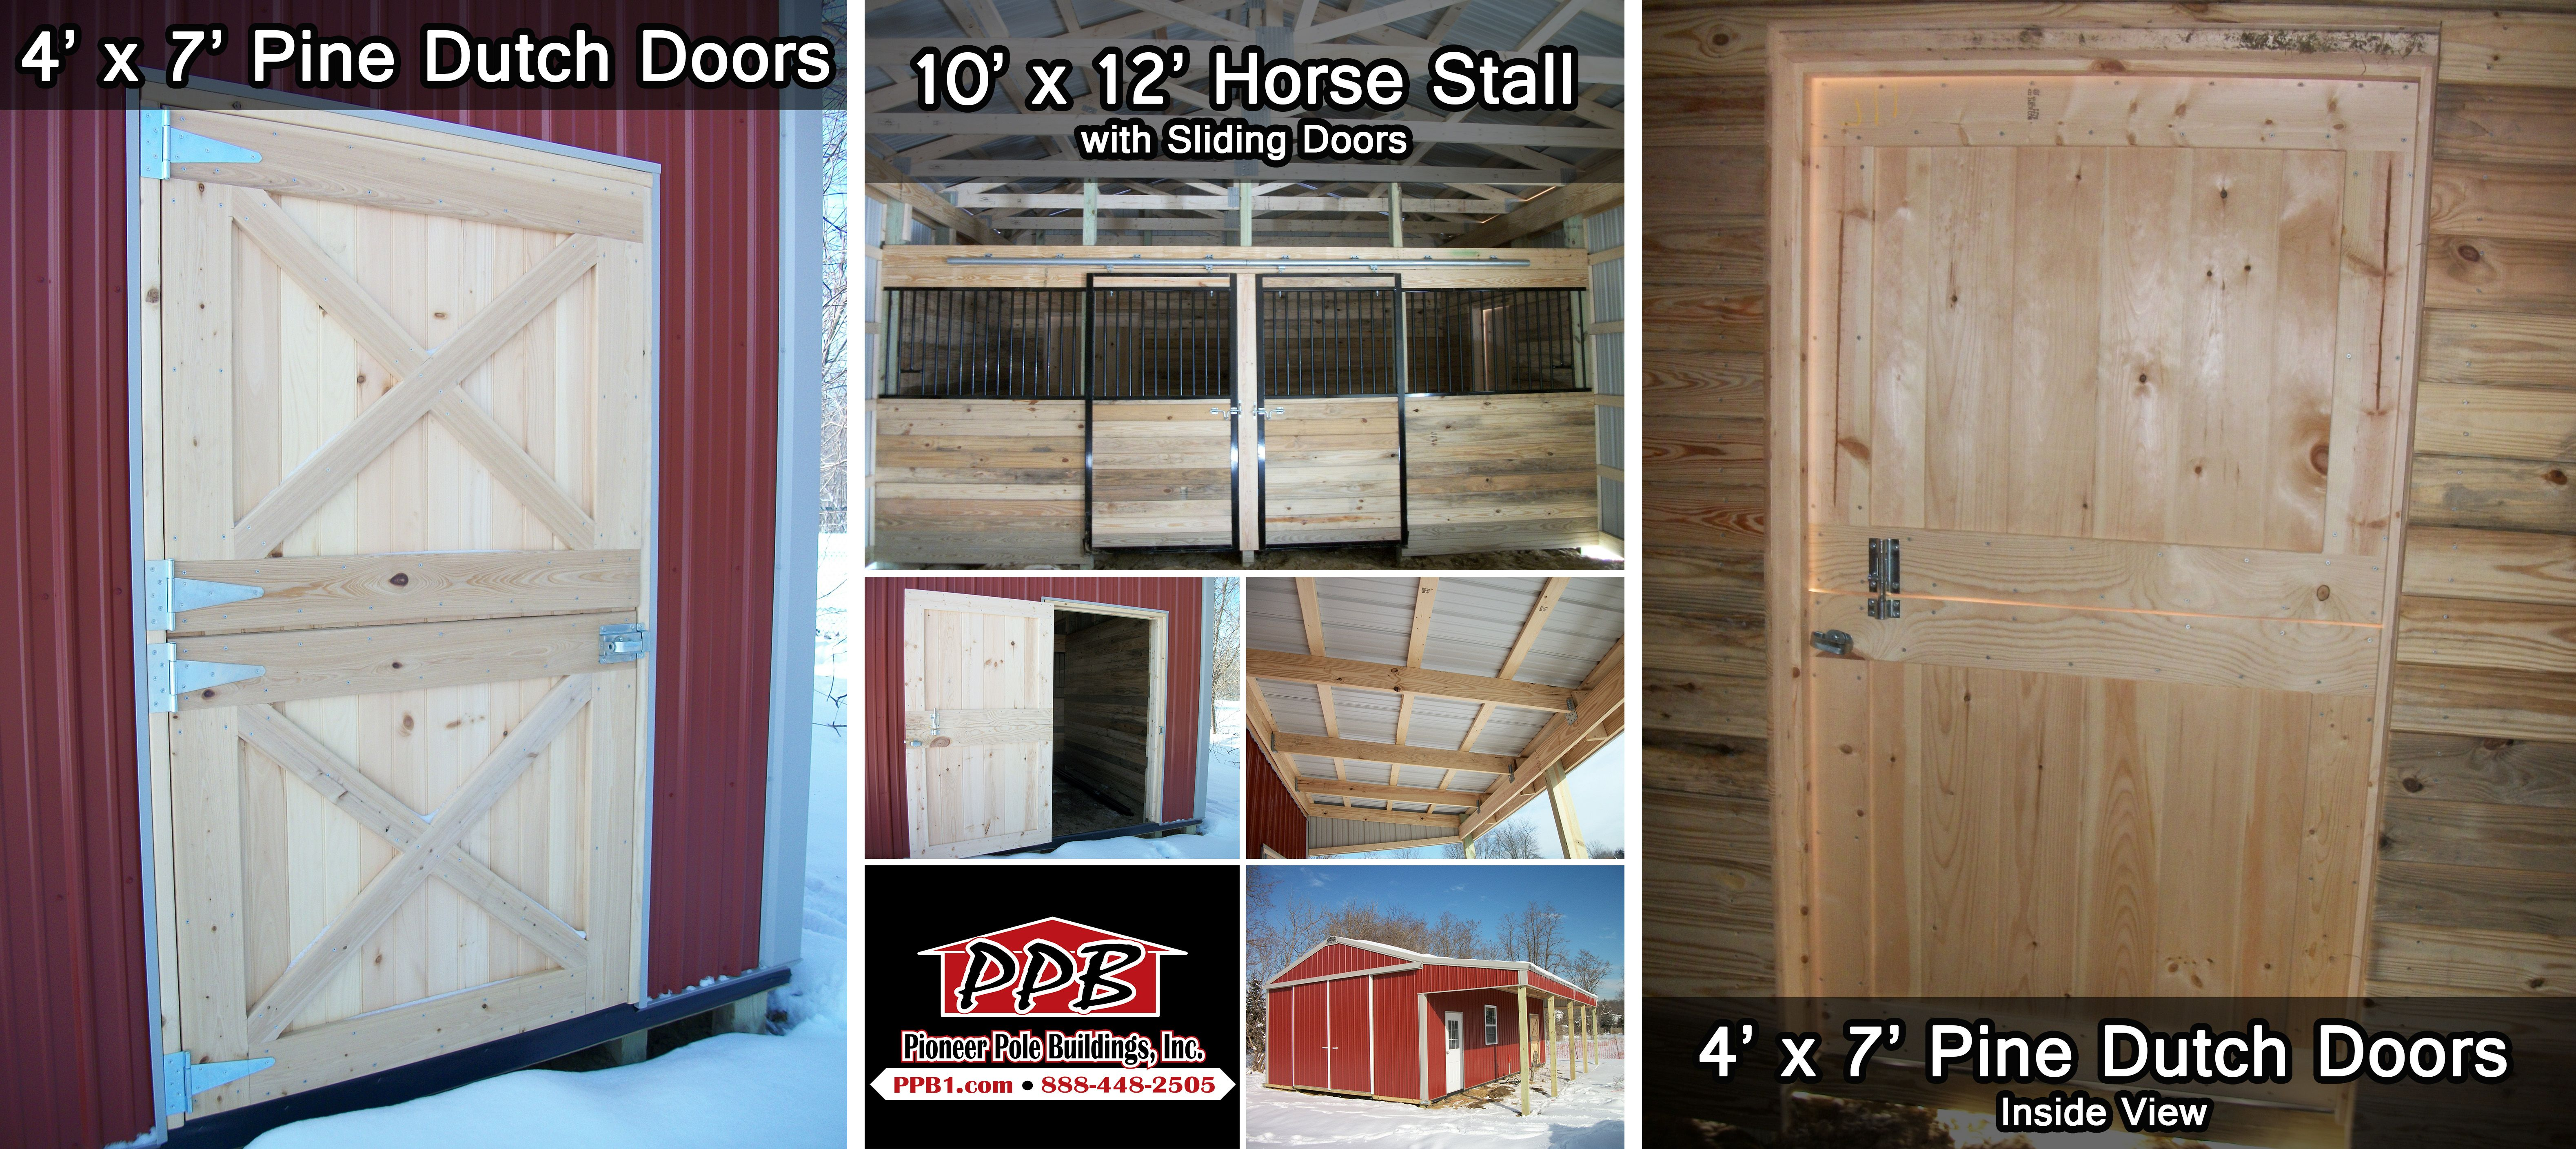 Looking To Get 4 X 7 Pine Dutch Doors Or How About A 10 X 12 Horse Stall With Sliding Doors Pinedutchdoors Horse Pole Buildings Barn Design Dutch Door